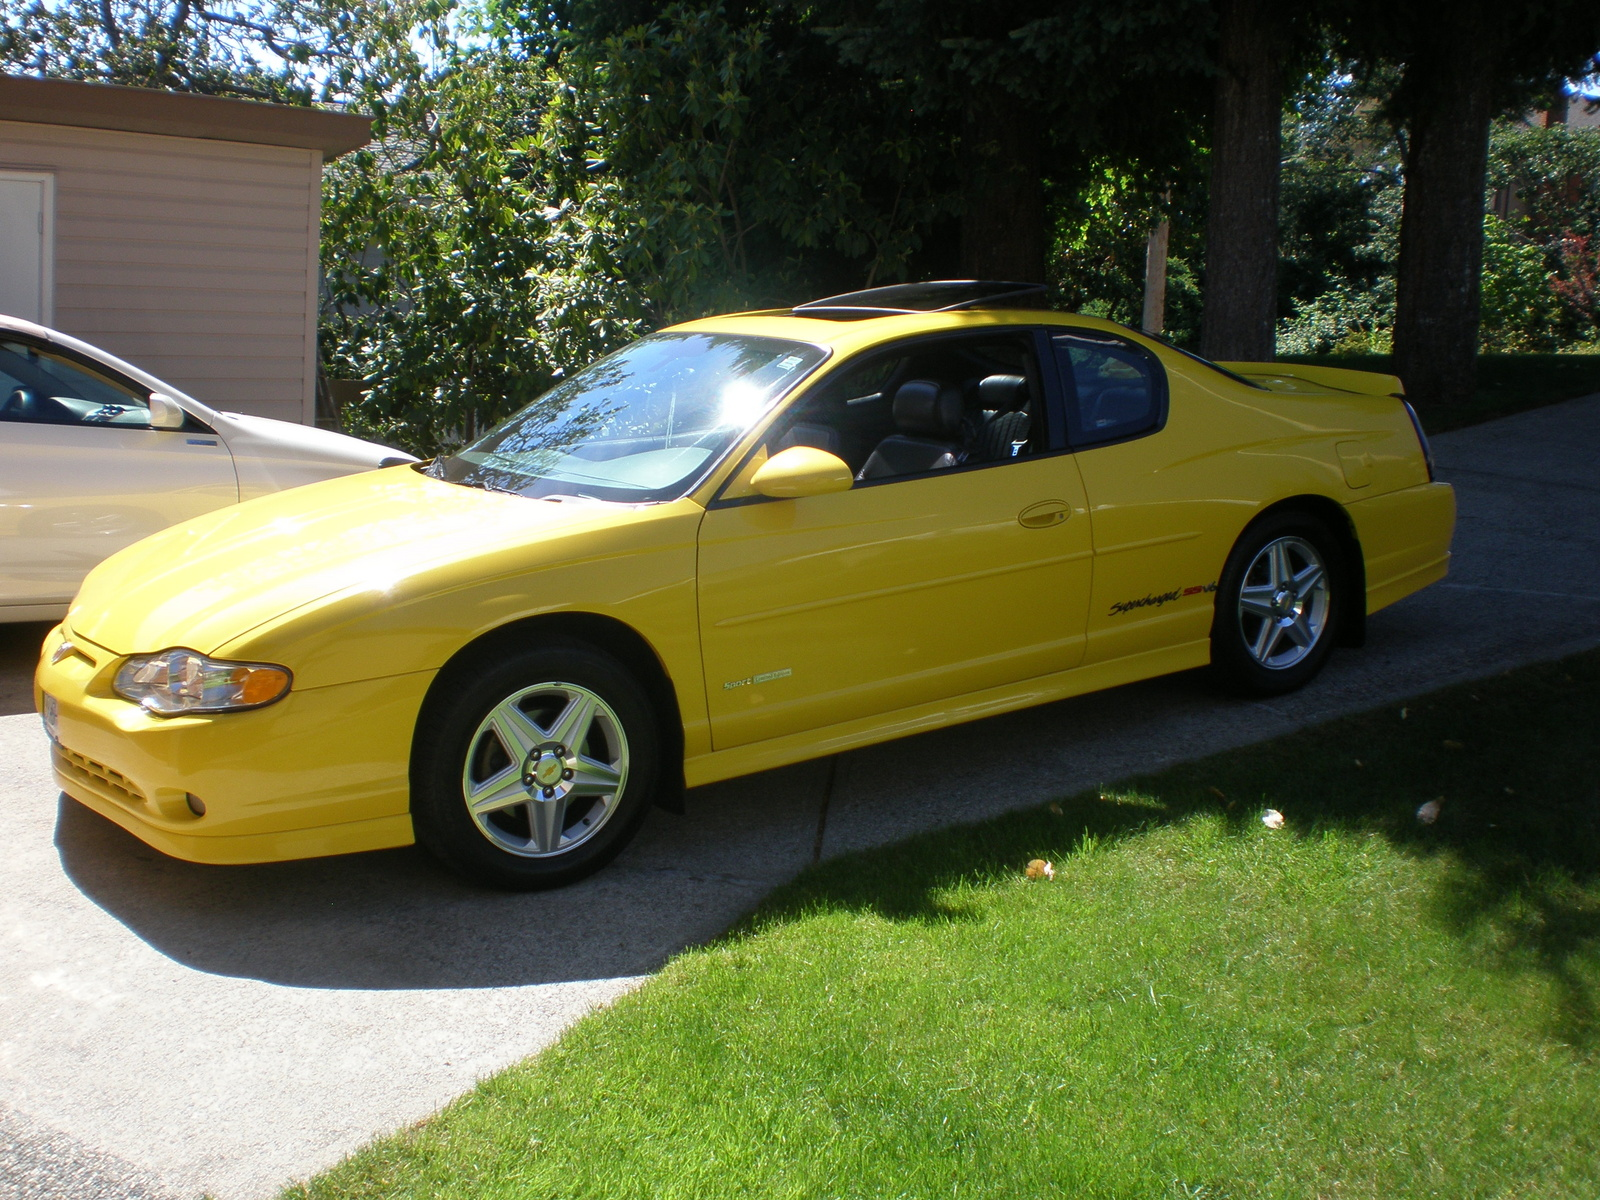 Corvette Yellow 2004 Chevy Monte Carlo SS Supercharged 240 HP 3.8 Liter V-6.